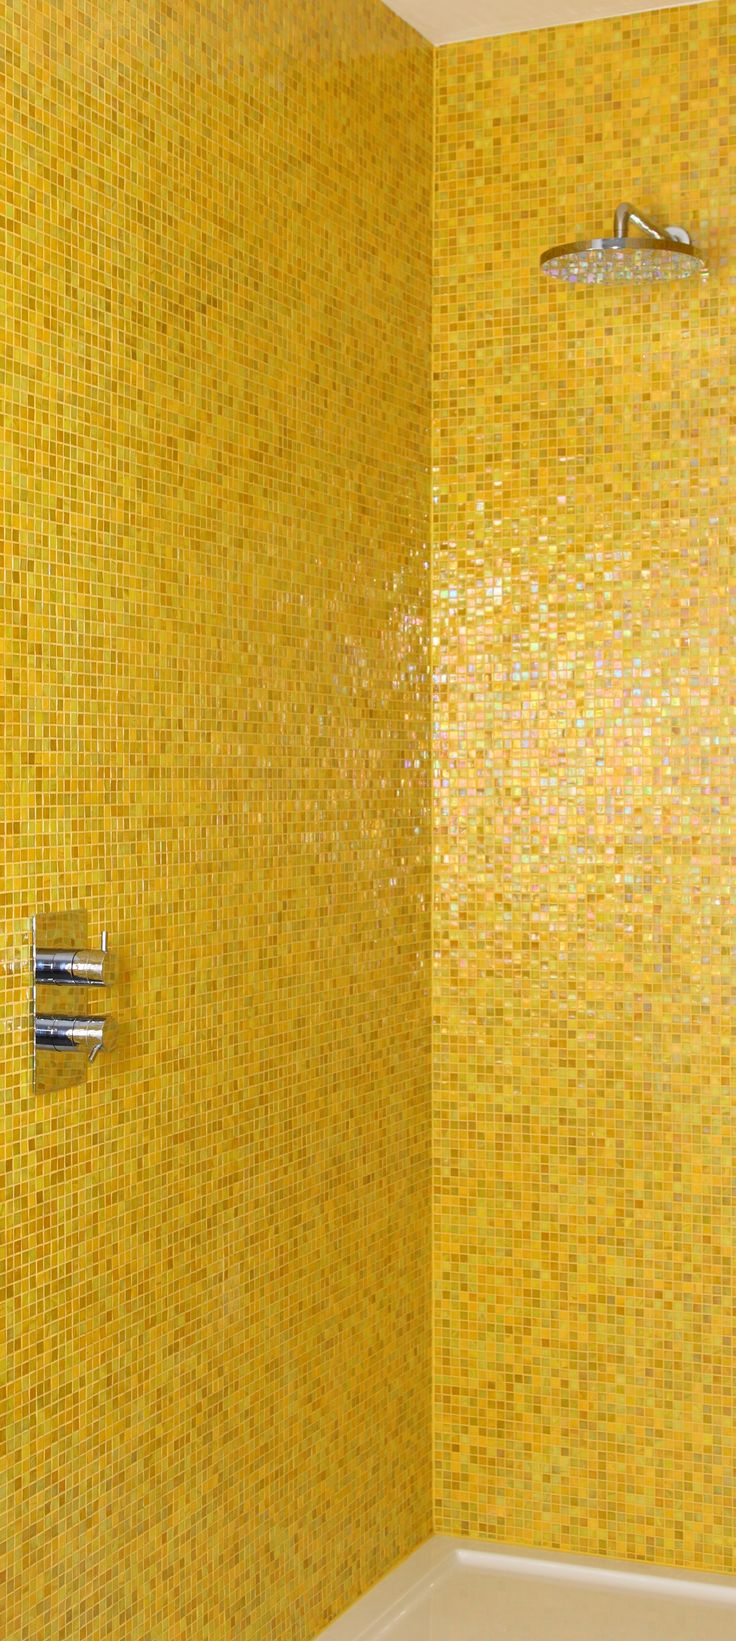 Yellow tile bathroom paint colors - Bold Yellow Makes Such A Happy Statement In A Shower